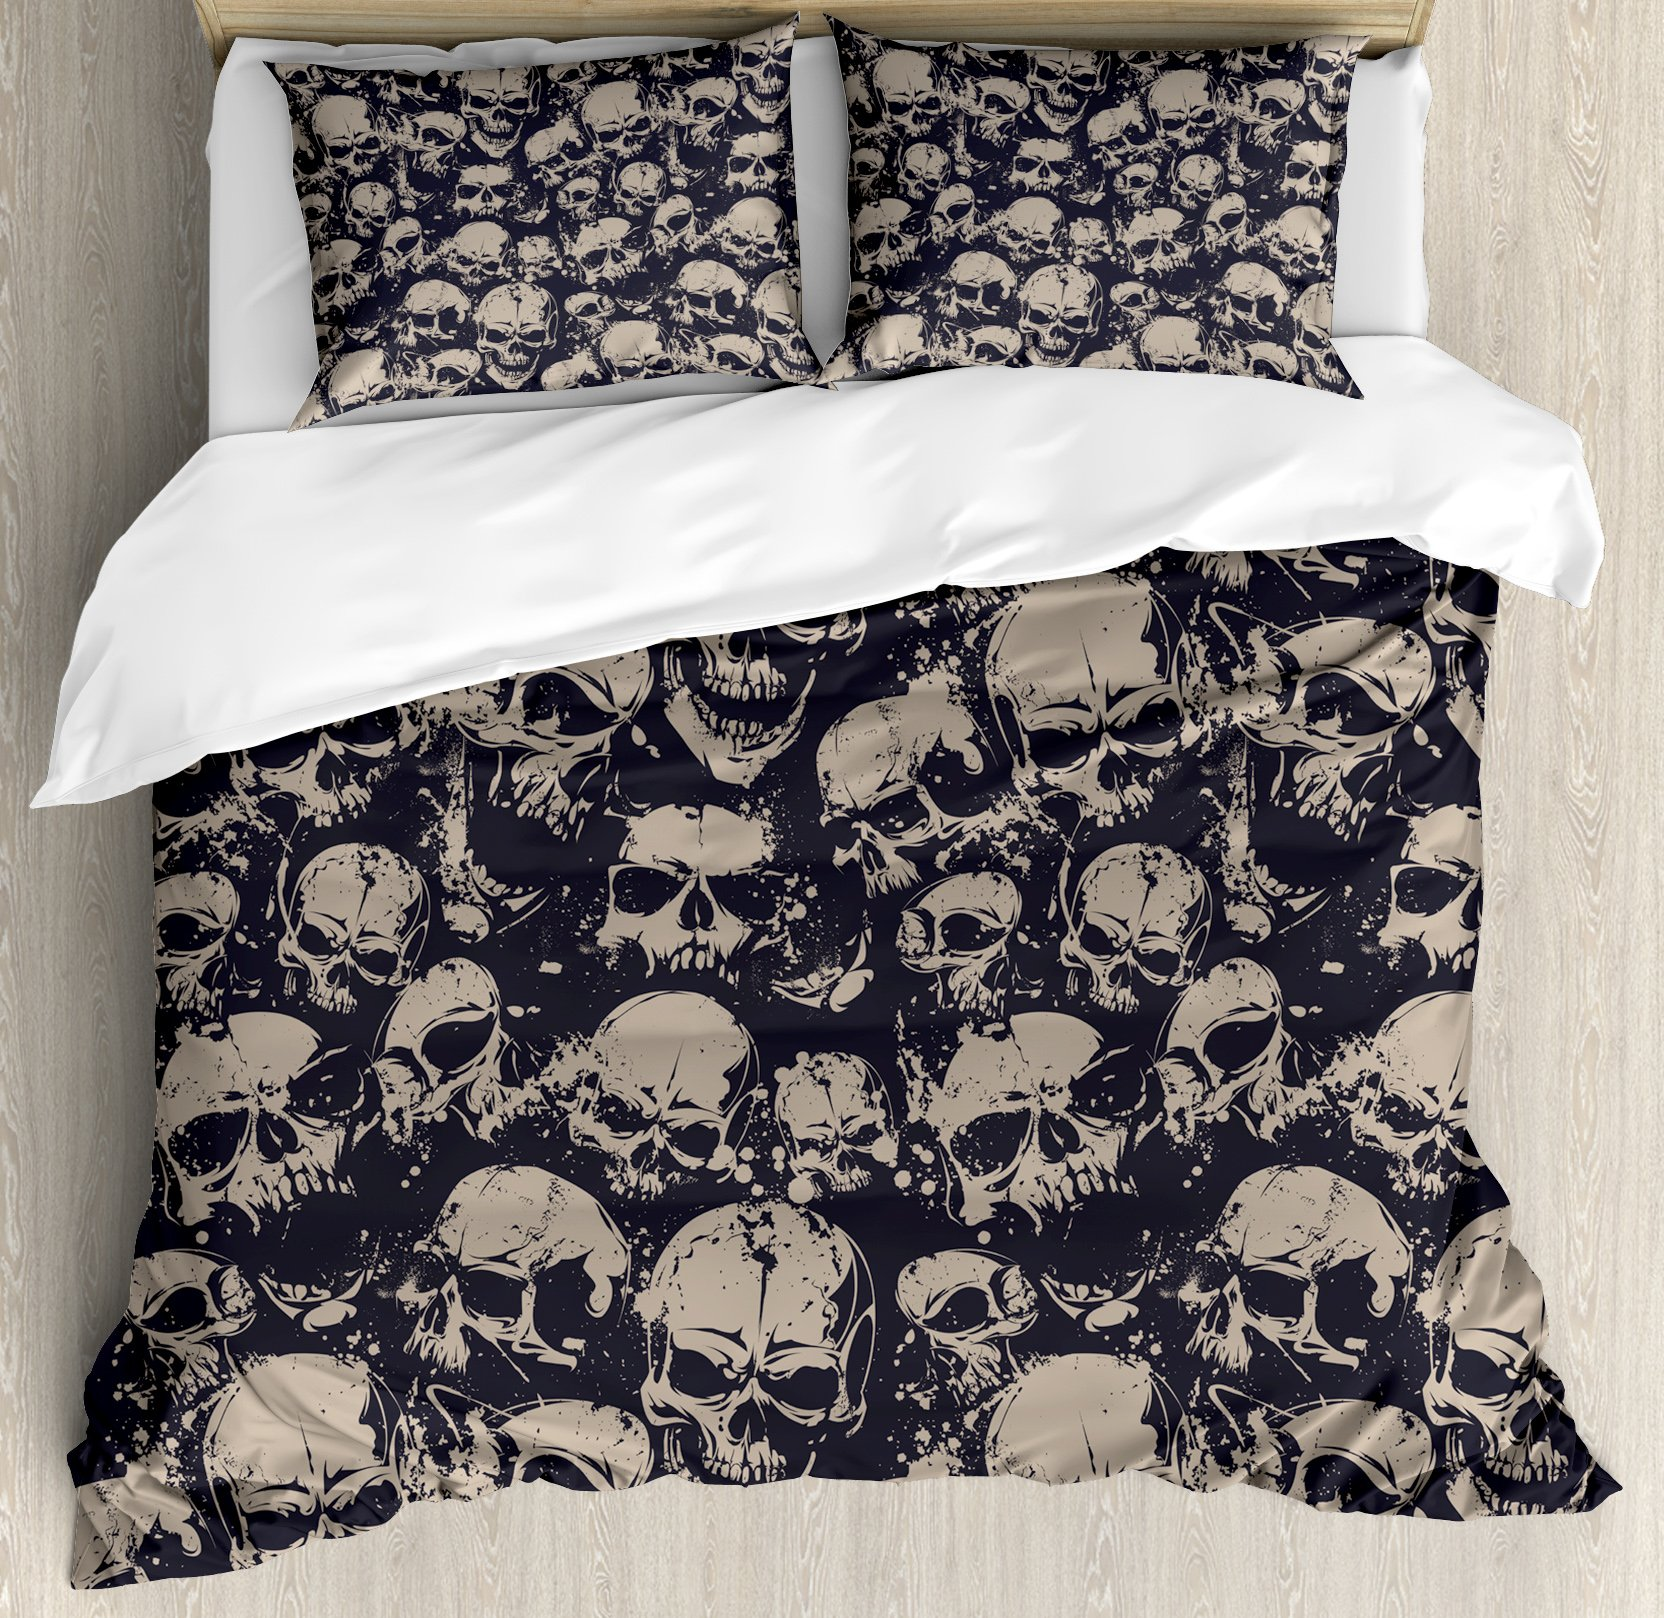 Ambesonne Skull Duvet Cover Set King Size by, Grunge Scary Skulls Sketchy Graveyard Death Evil Face Horror Theme Design, Decorative 3 Piece Bedding Set with 2 Pillow Shams, Charcoal Grey Tan by Ambesonne (Image #1)